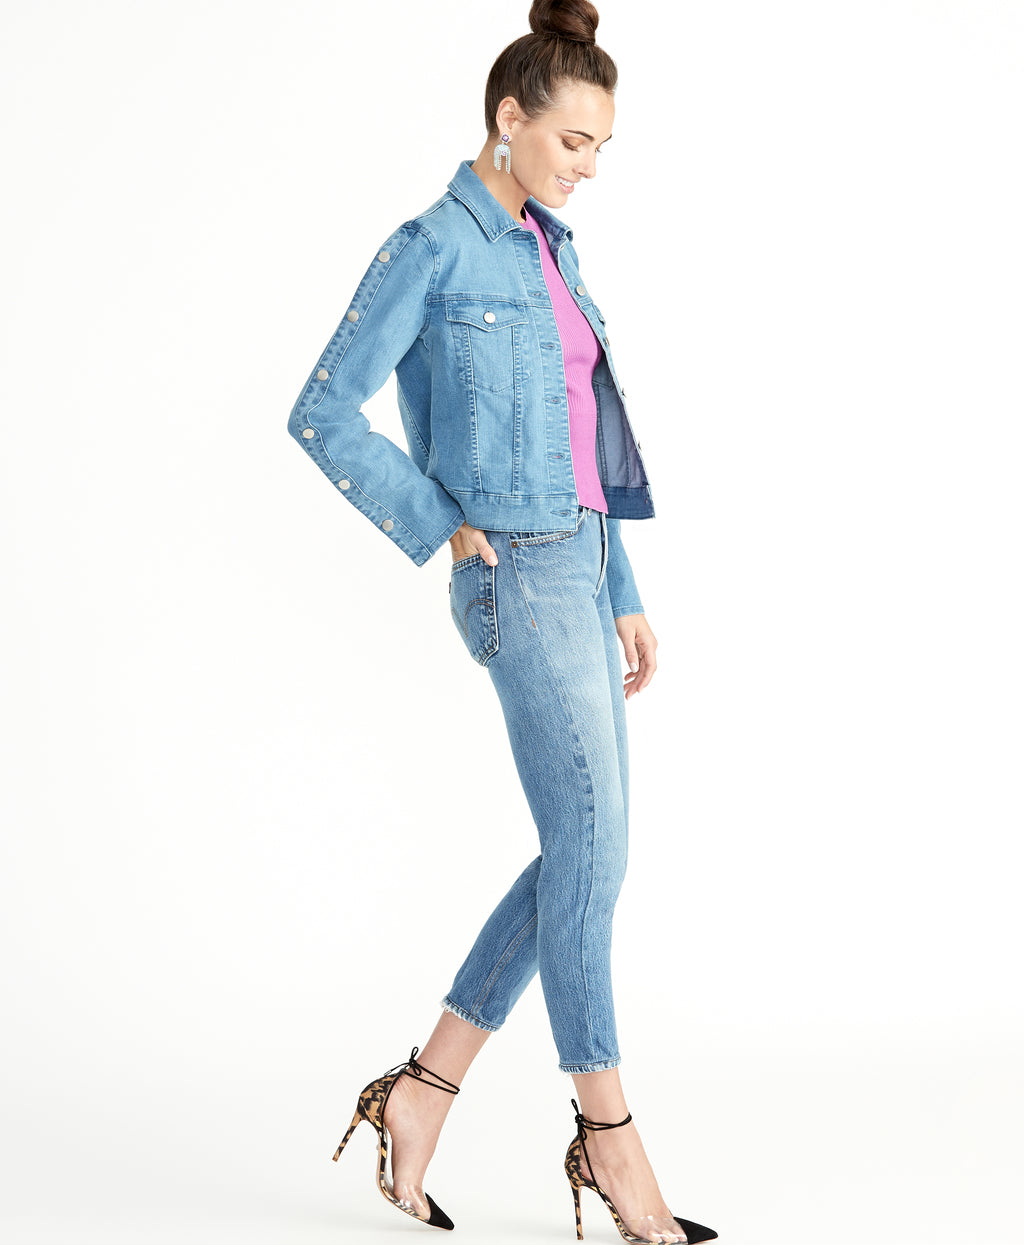 Bobbi Snap Jacket | Bobbi Snap Jacket